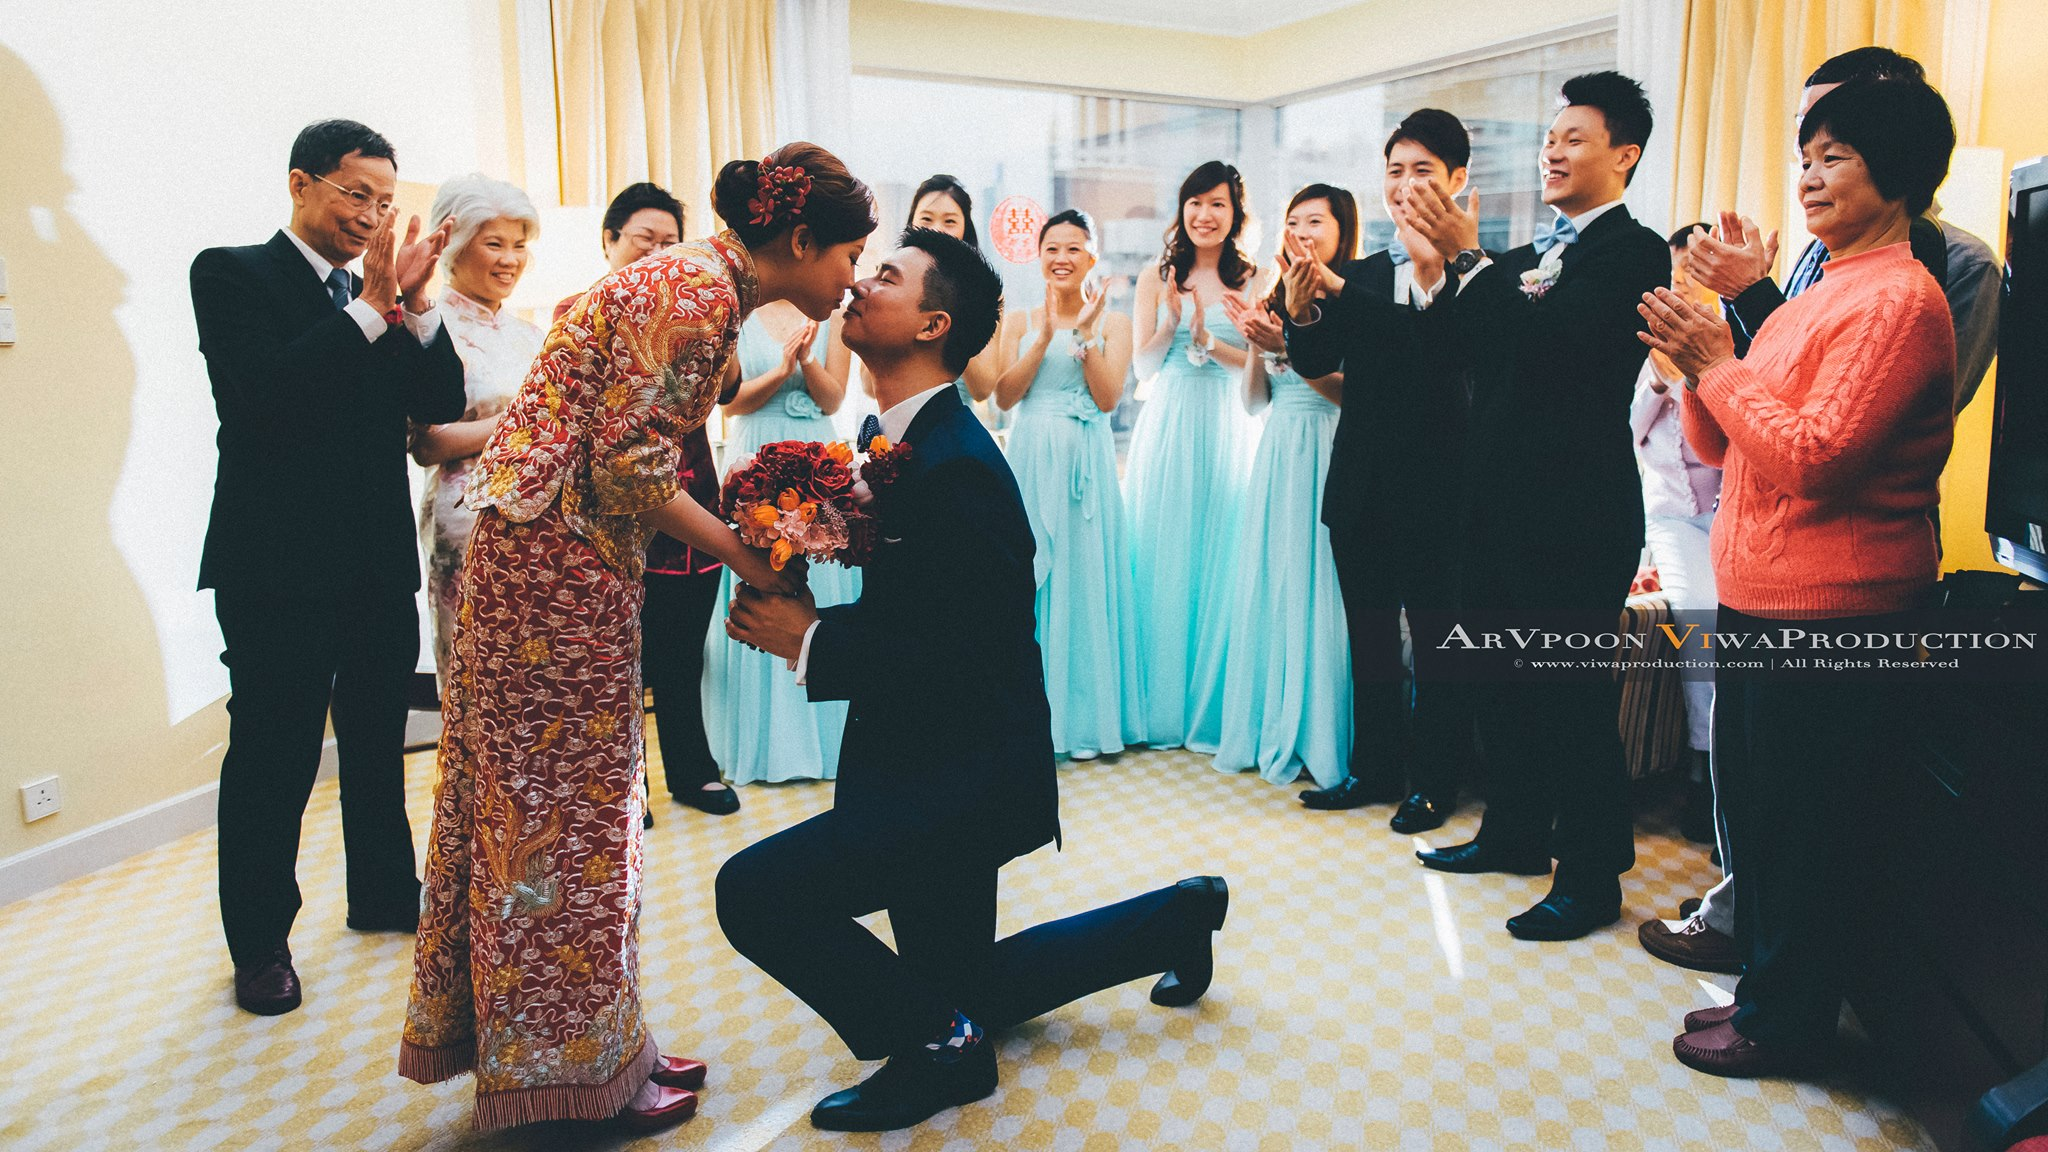 ArV ViWA ViWAProduction ArVPoon Wedding SnapShot WeddingDay